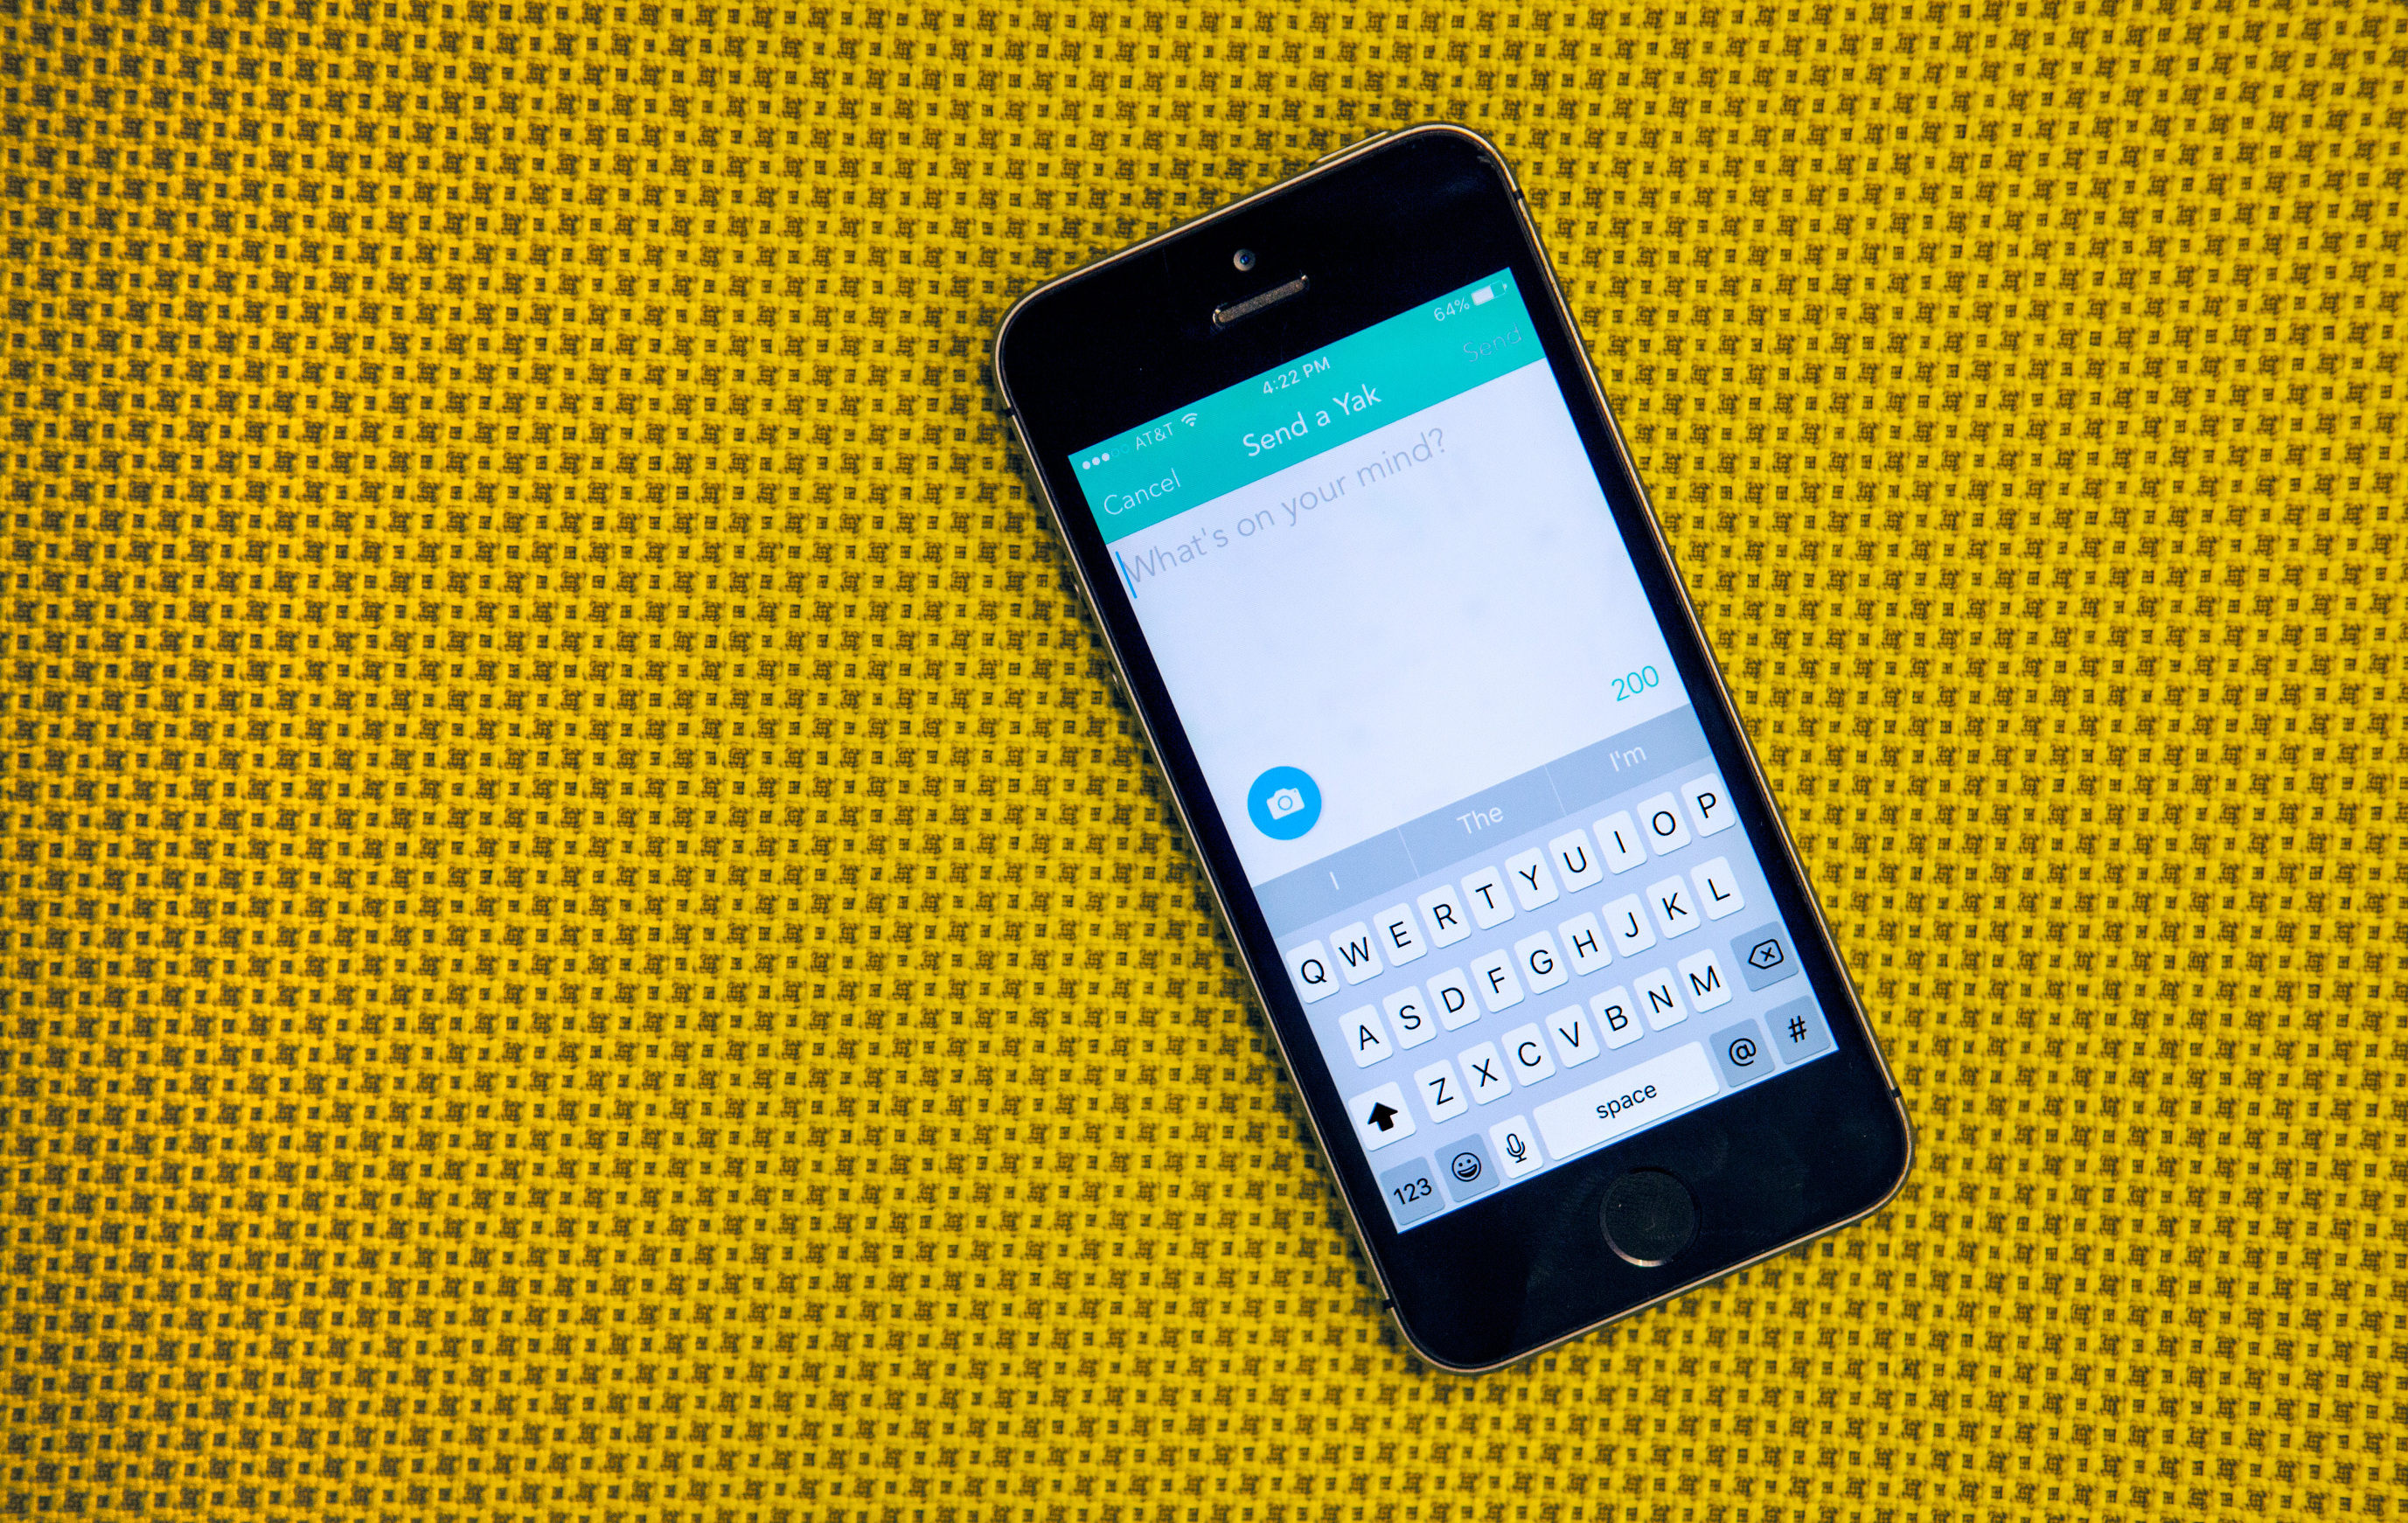 The Yik Yak app allows users to post anonymous messages, and to read anonymous messages posted in their current location. Ariel Zambelich/NPR